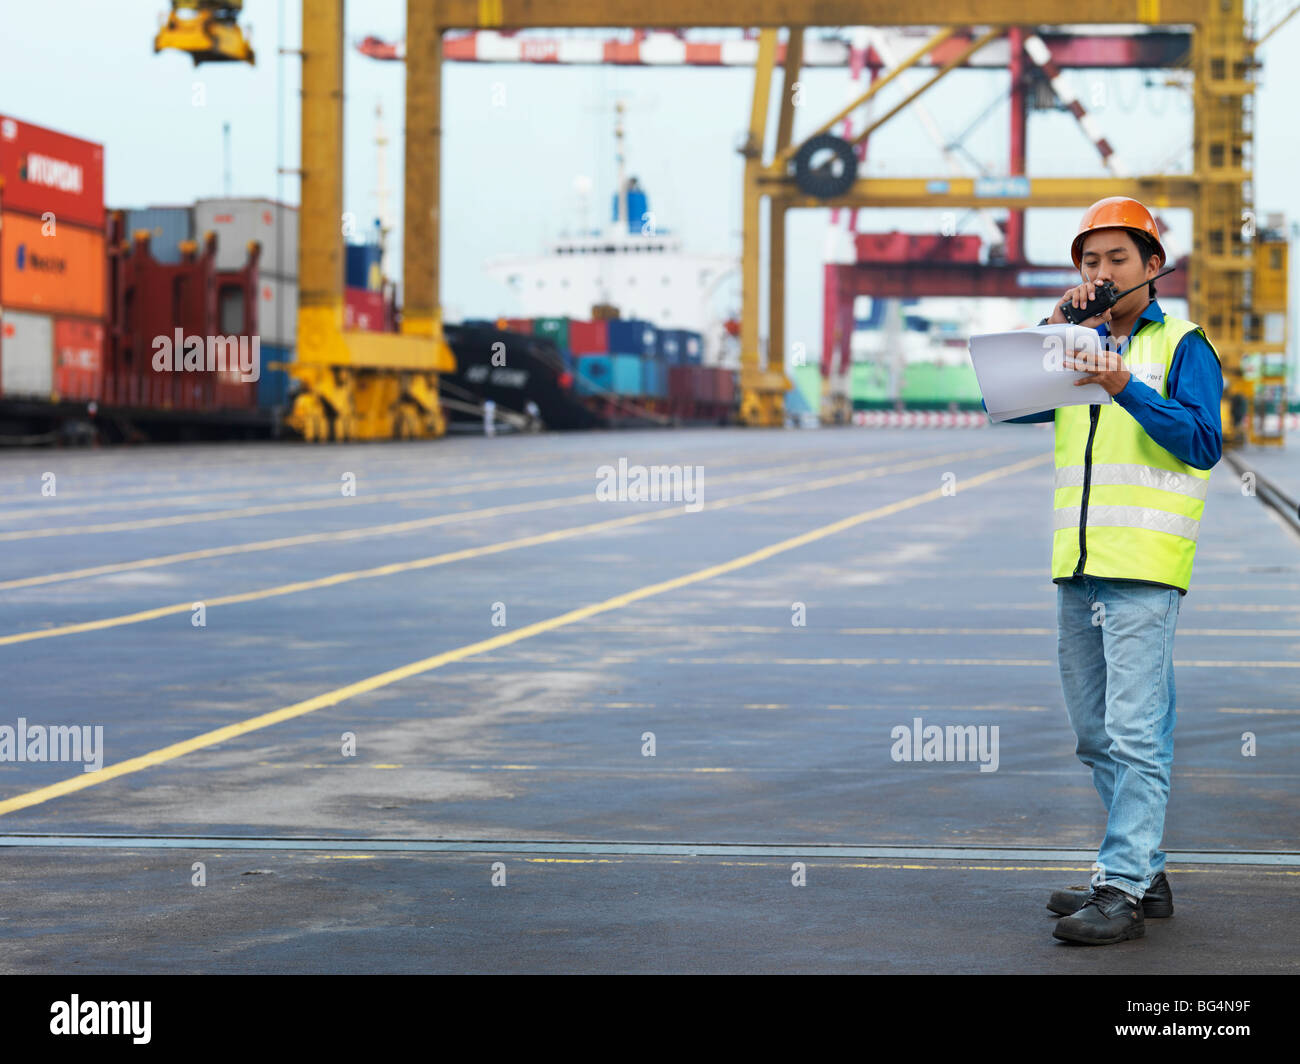 A man on the job, talking into a radio. Stock Photo